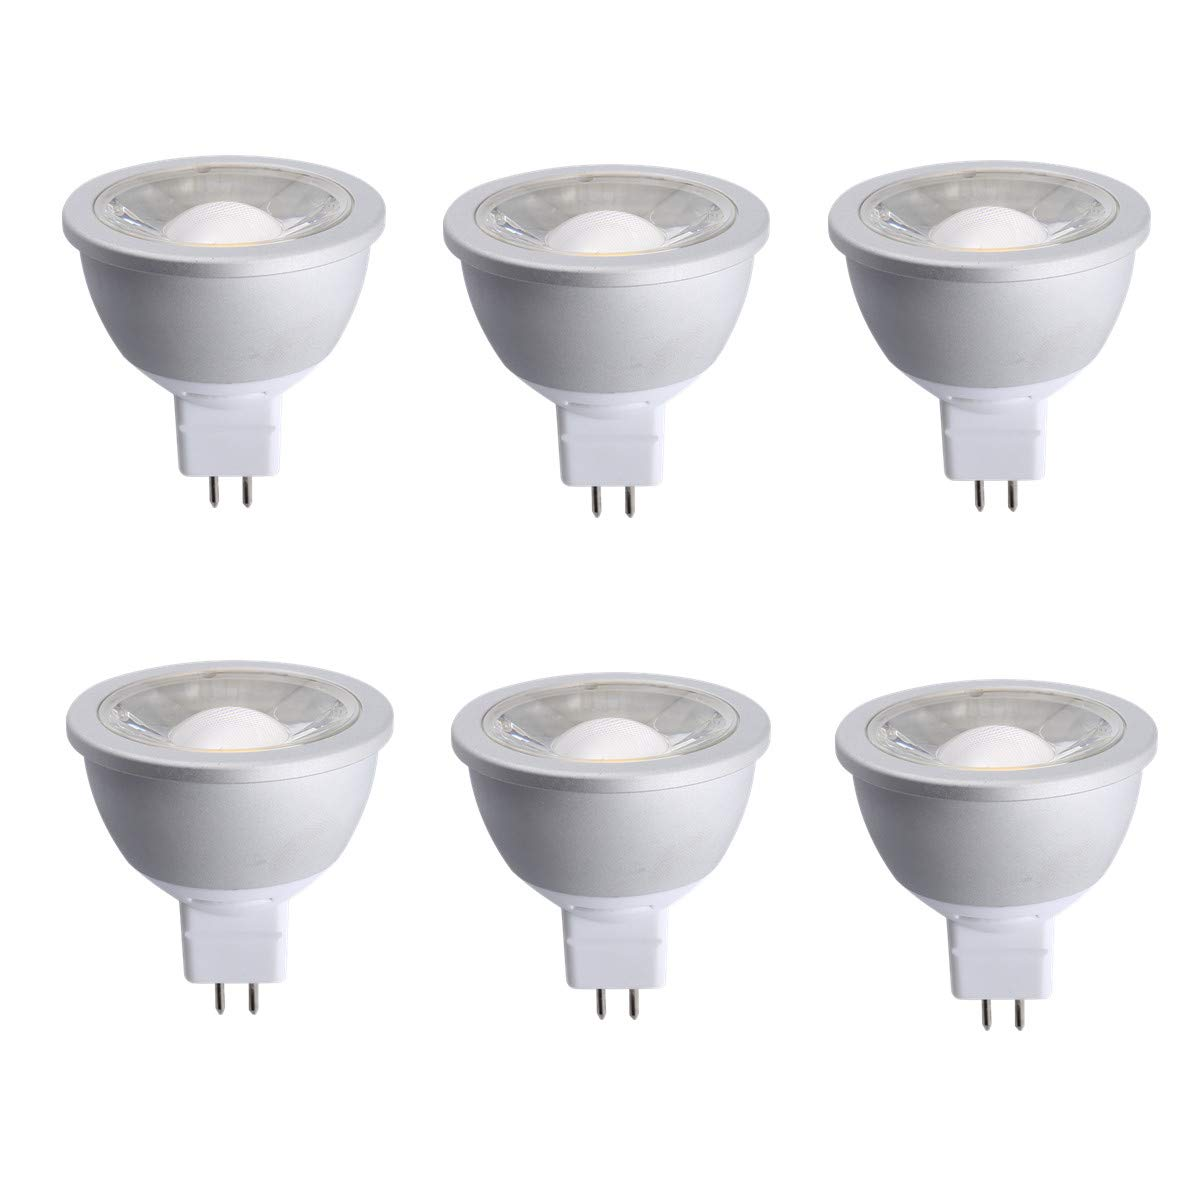 (Pack of 6) NICKLED 7W MR16 Led Bulb, Dimmable, 50W Halogen Bulbs Equivalent, MR16 LED Recessed Spotlight with GU5.3 Base, 630lm, Compatible with 98% Electronic Transformer (6, 5000K-Natural White)